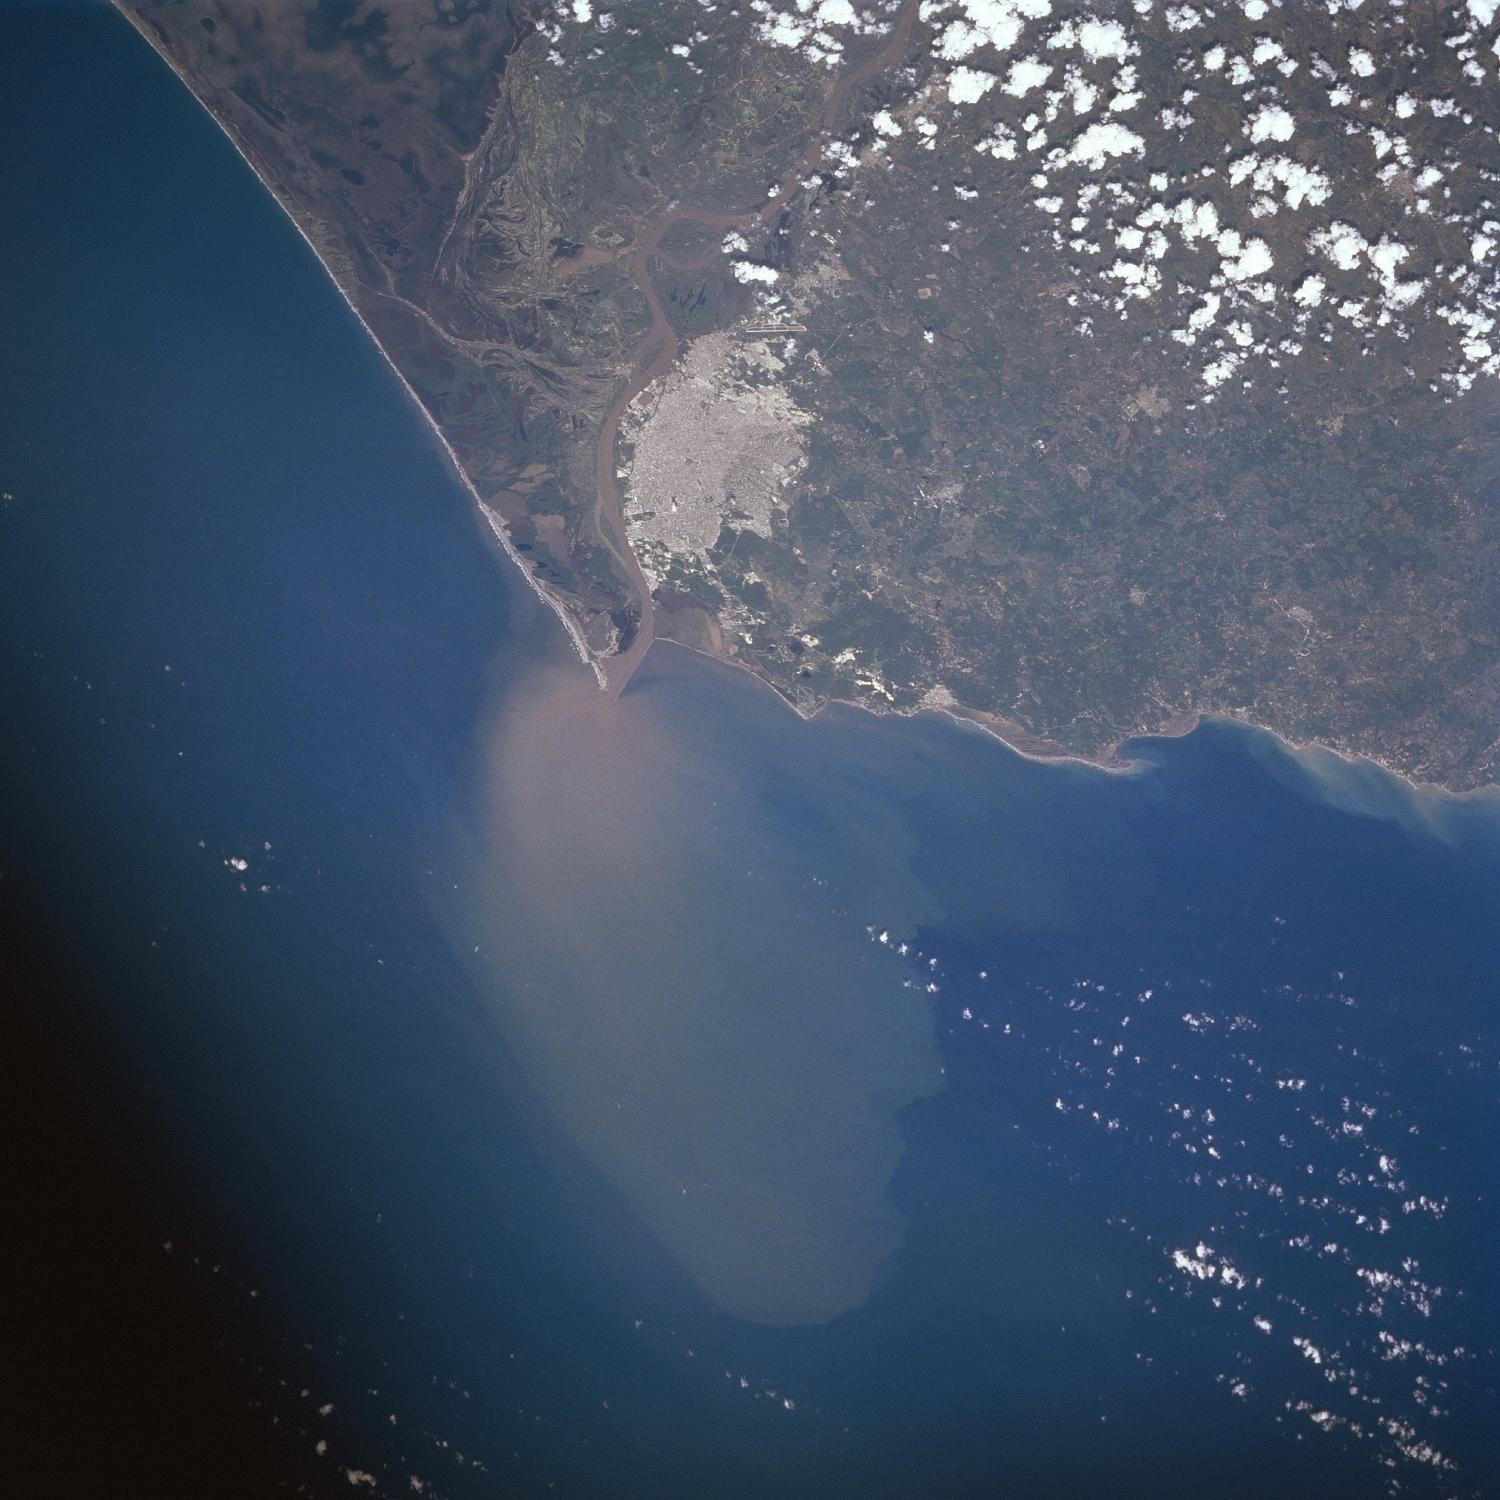 Satellite Image, Photo of Barranquilla, Magdalena River Mouth, Colombia